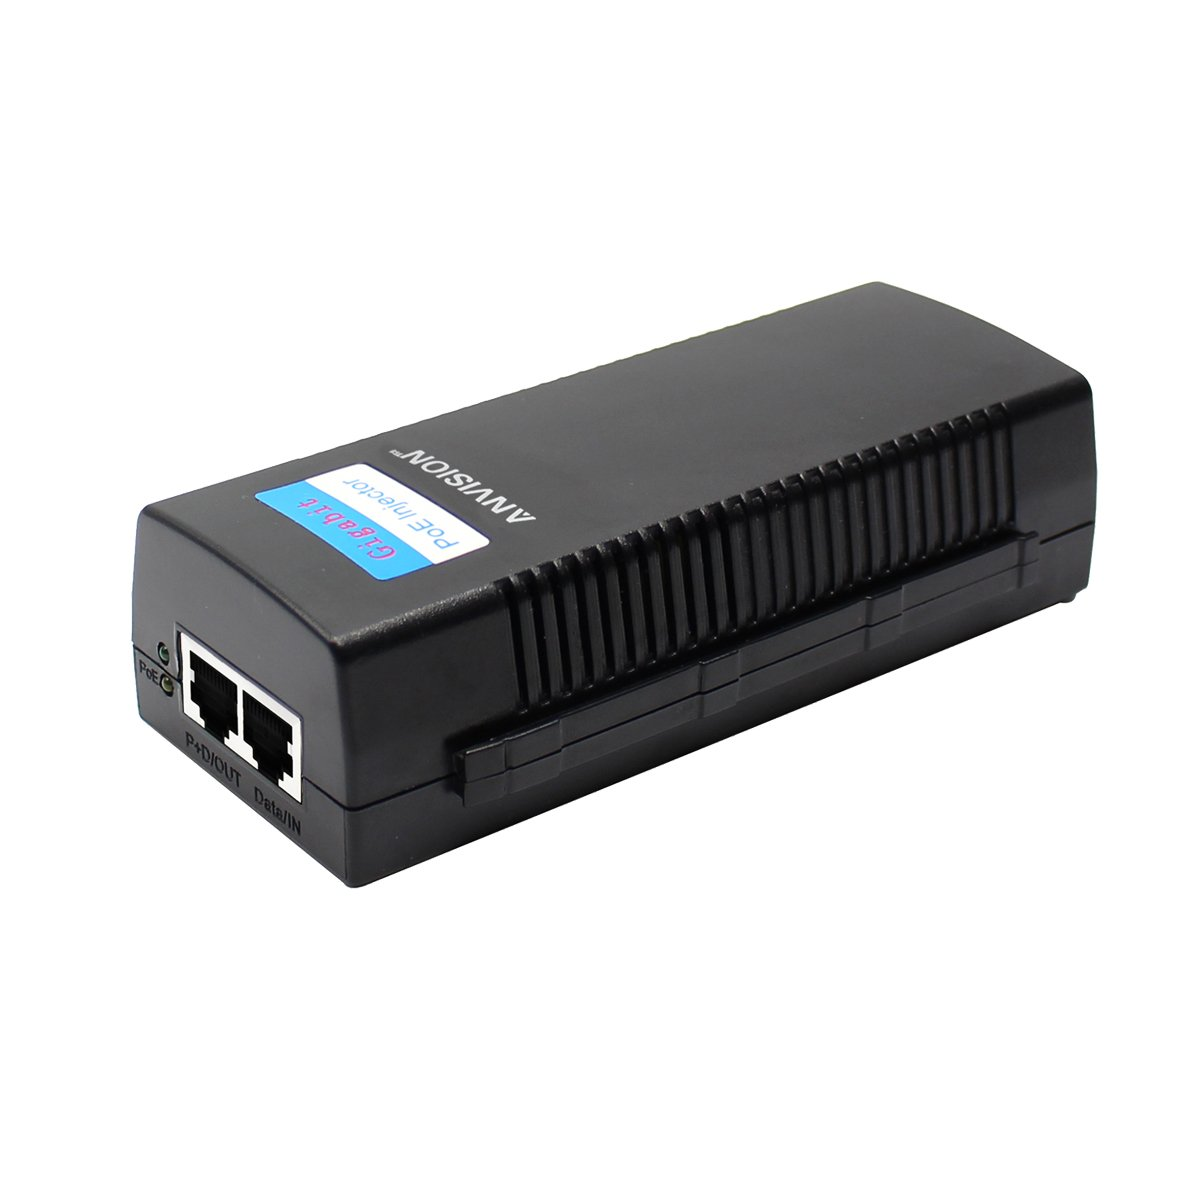 ANVISION 48V 0.8A Gigabit PoE Injector Power Supply Ethernet Adapter with AC Cord IEEE 802.3af/at Compliant 10/100/1000Mbps for IP Voip Phones, Cameras, AP and more by ANVISION